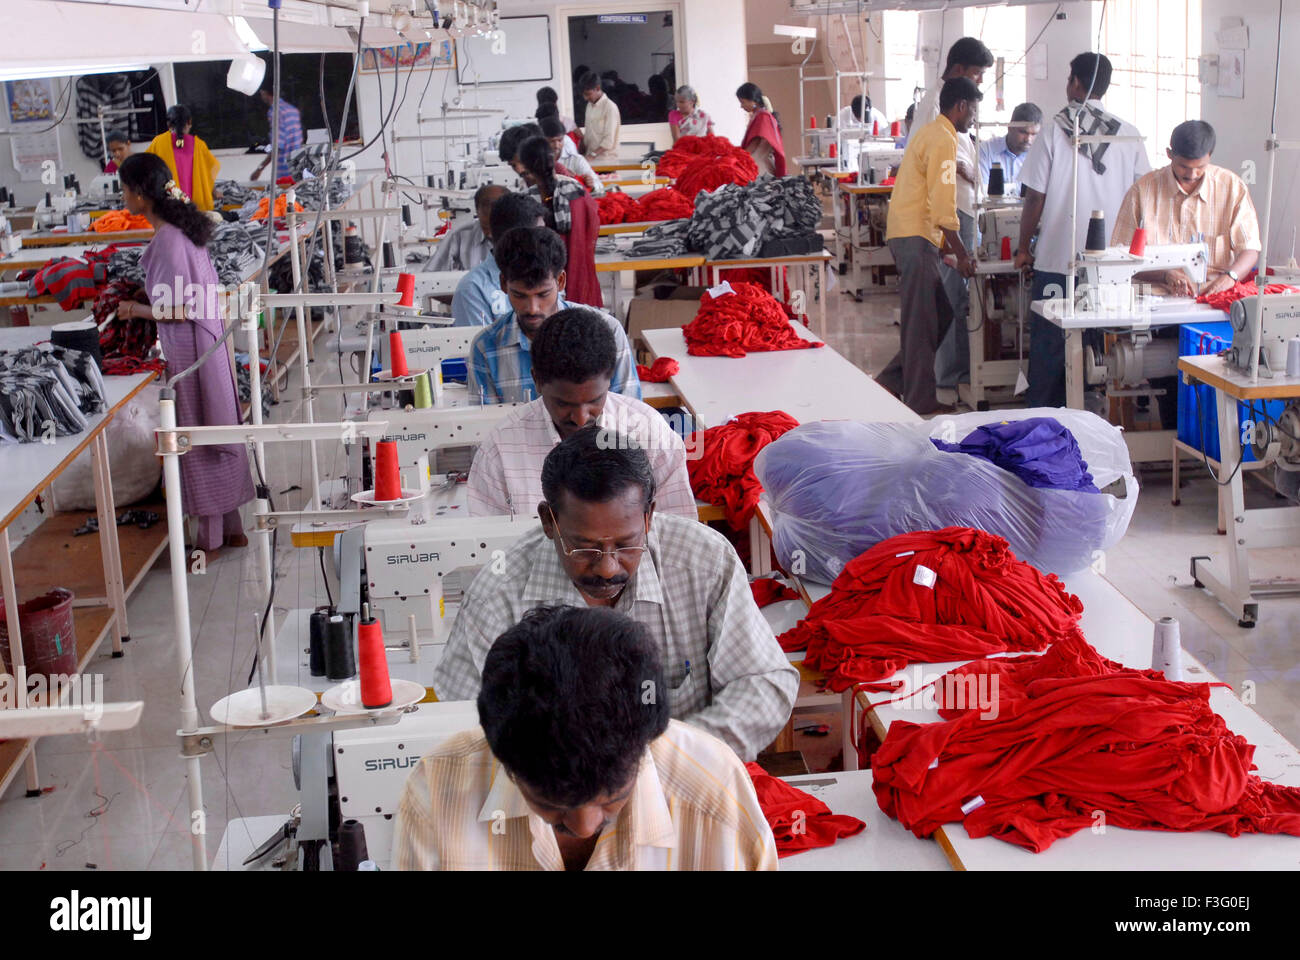 Stitching in a garment industry ; Tirupur ; Tamil Nadu ; India - Stock Image